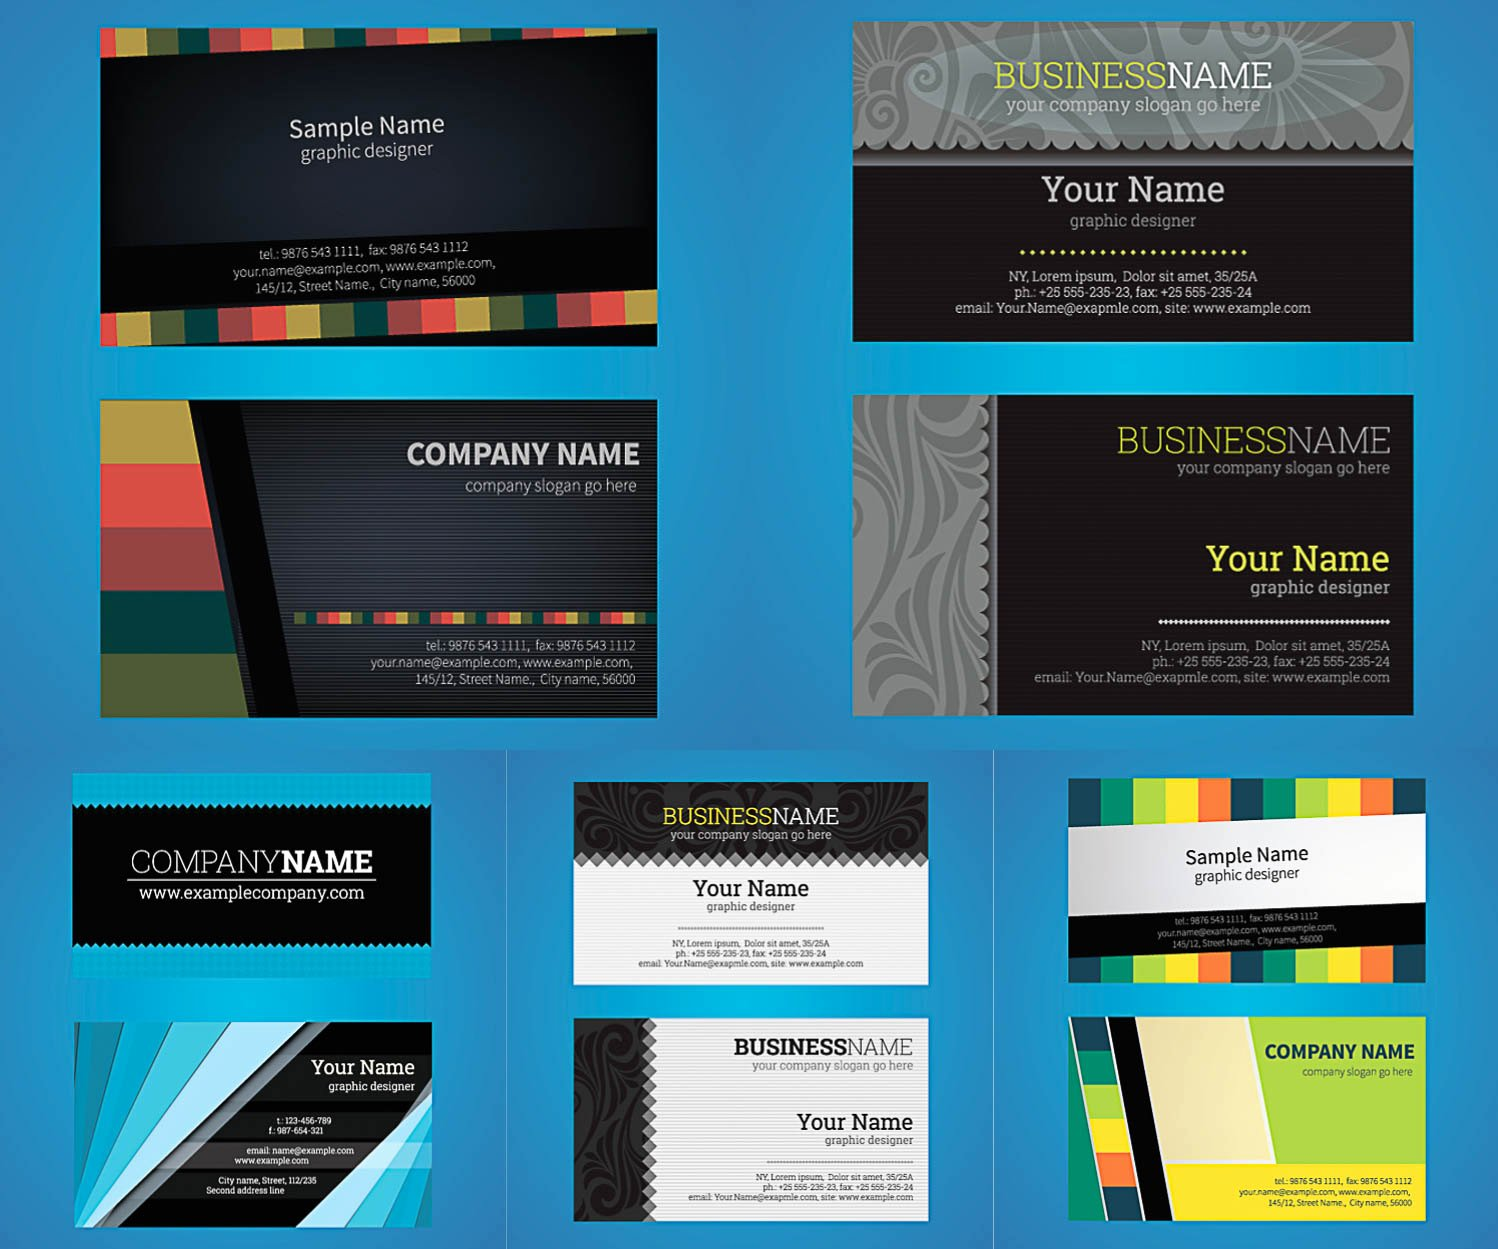 Business Card Template Illustrator Free